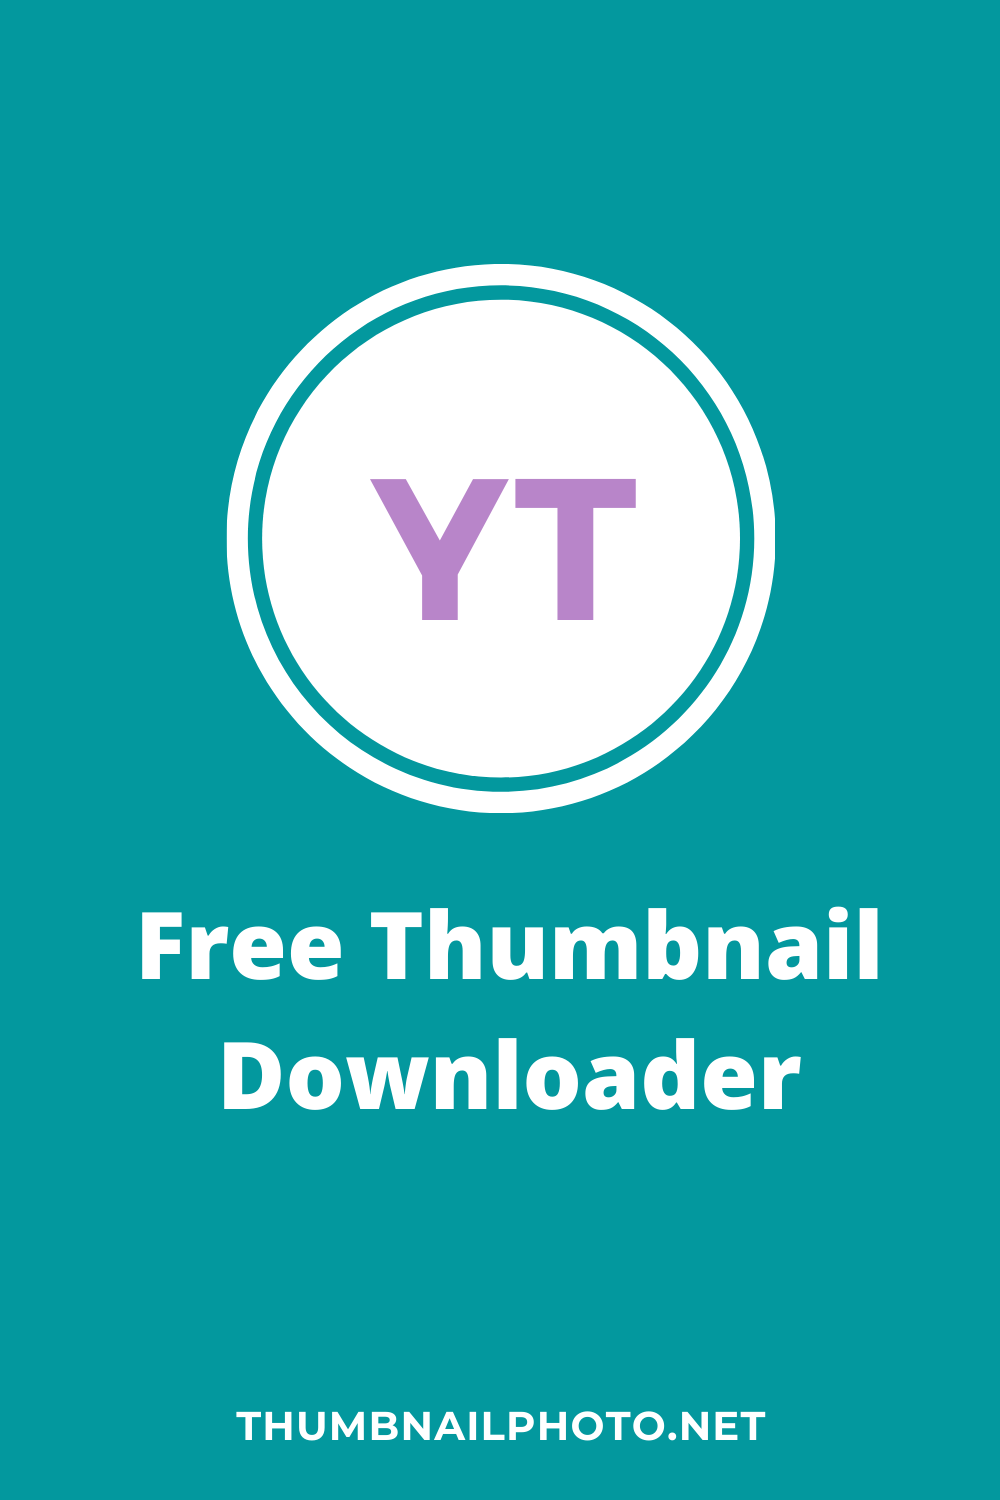 Free Thumbnail Downloader - Save and view